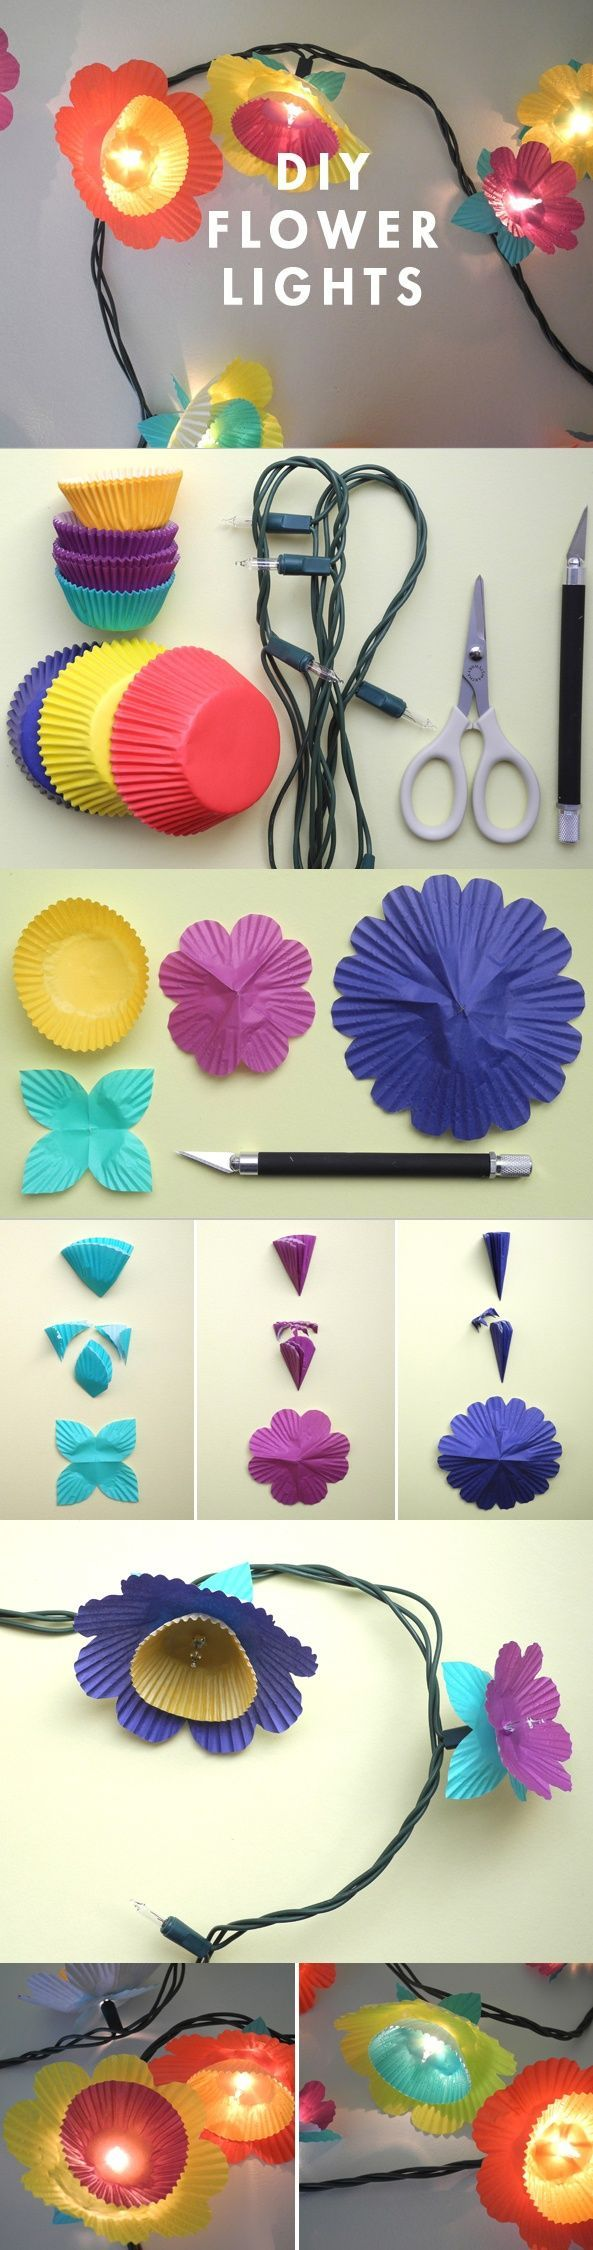 DIY Flower Lights tutorial